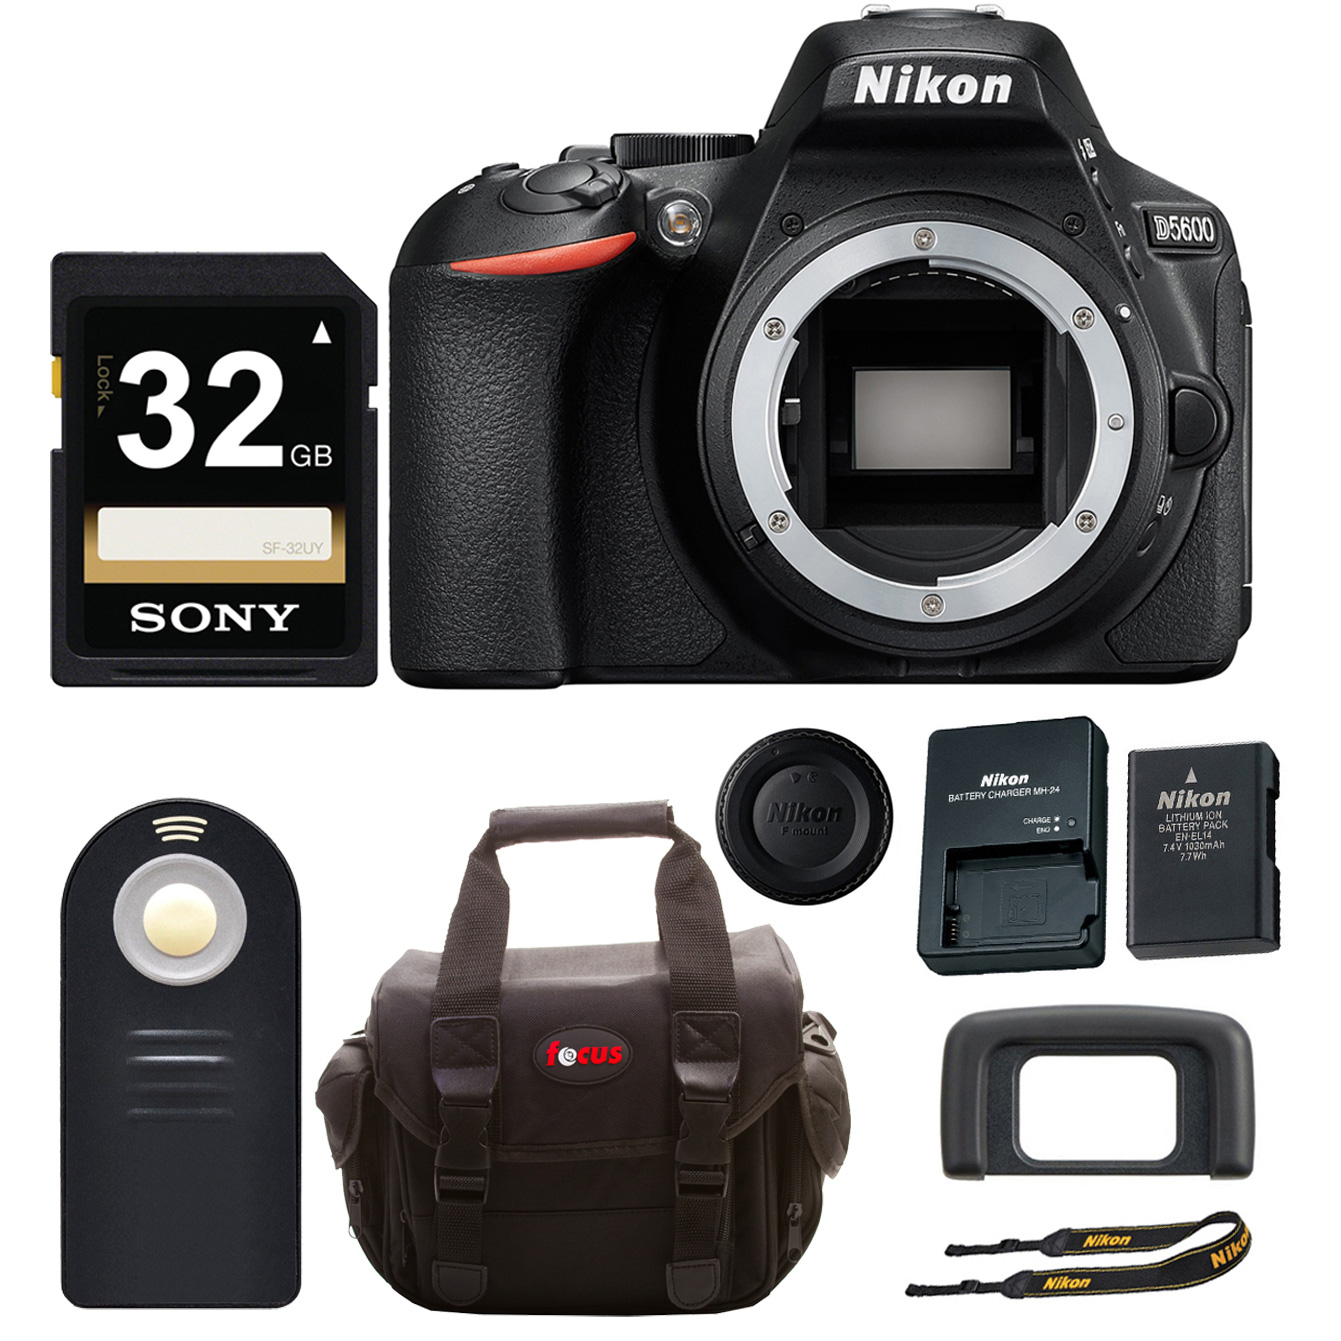 Nikon D5600 DSLR Camera Body + 32GB Card + Wireless Shutter Release + Soft-Shell Gadget Bag